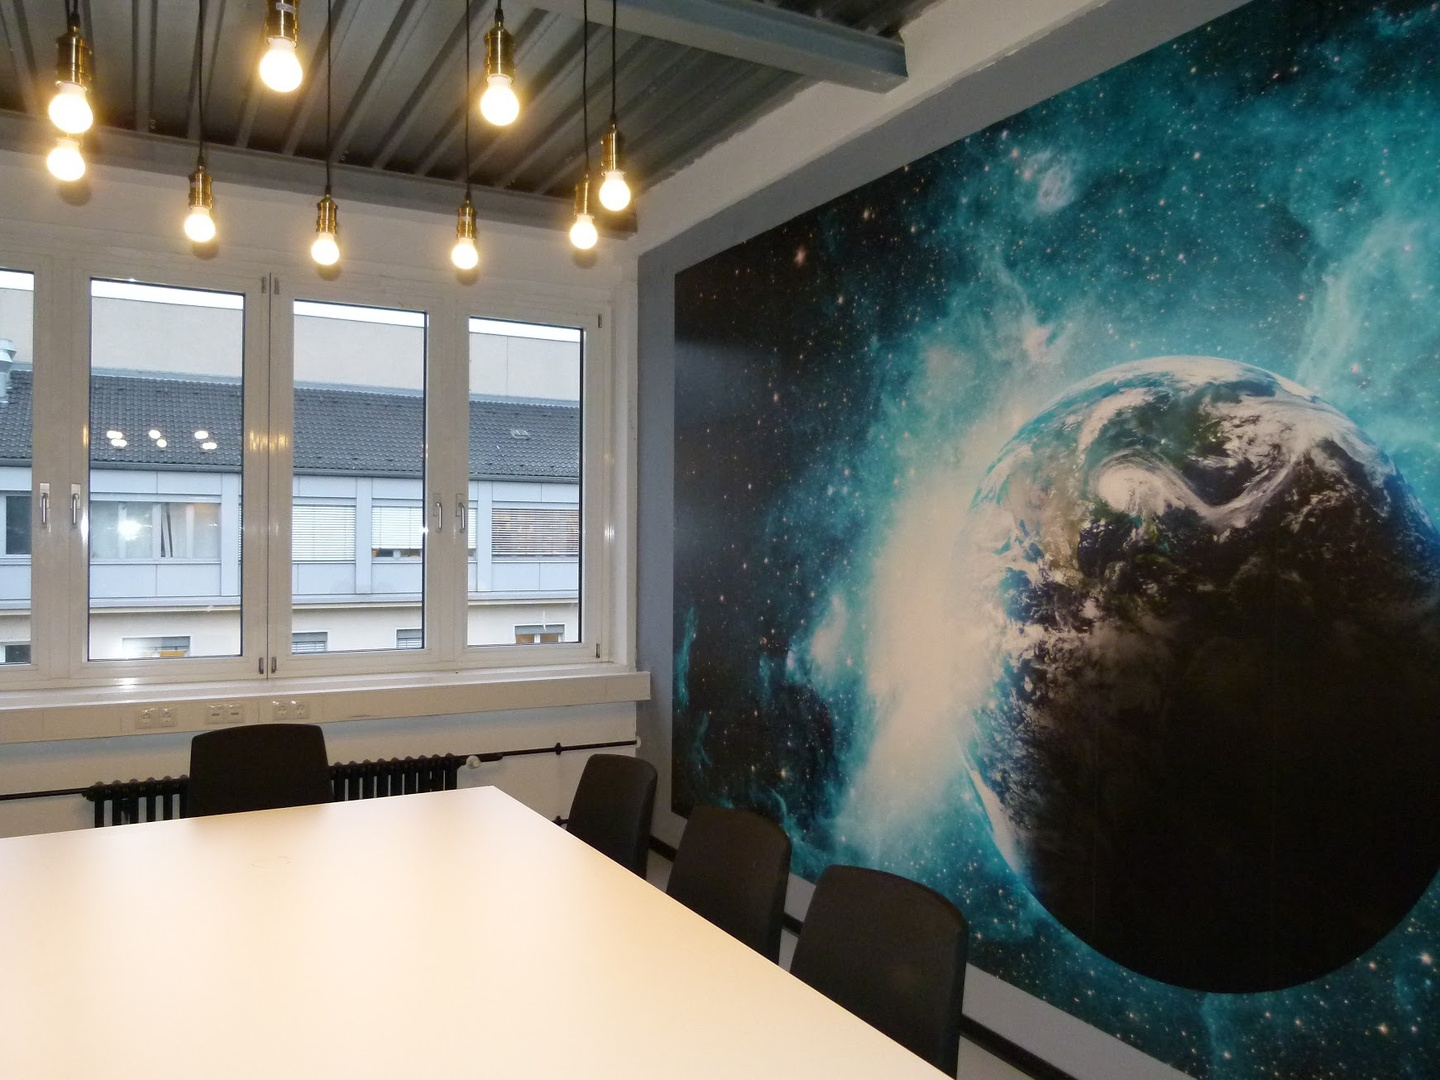 Berlin conference rooms Meeting room rent24 Mitte - Shoot for the Moon image 1